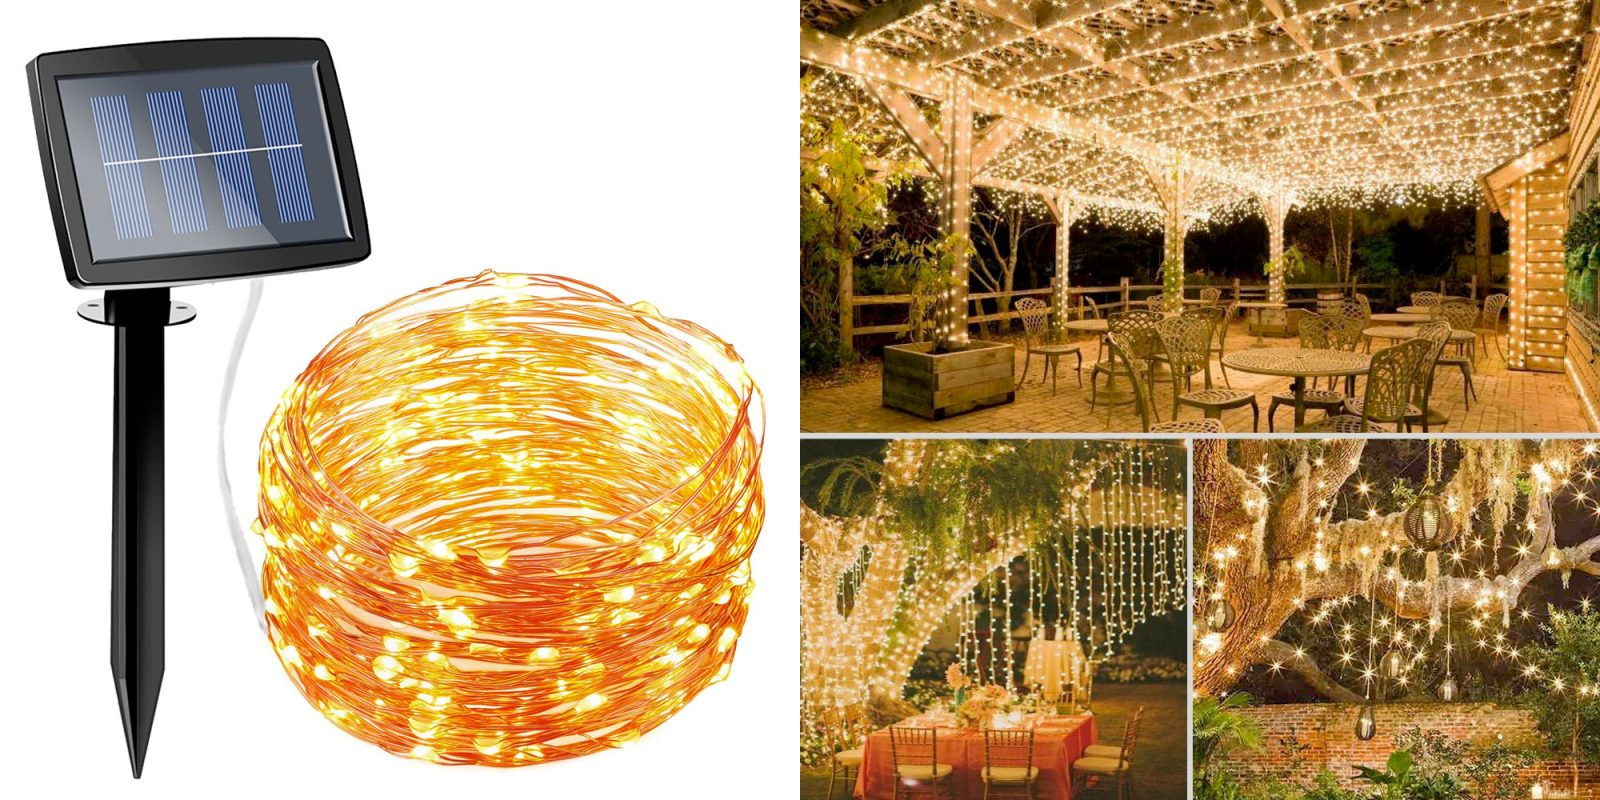 This $8 Prime shipped solar string light kit is a must for any outdoor space